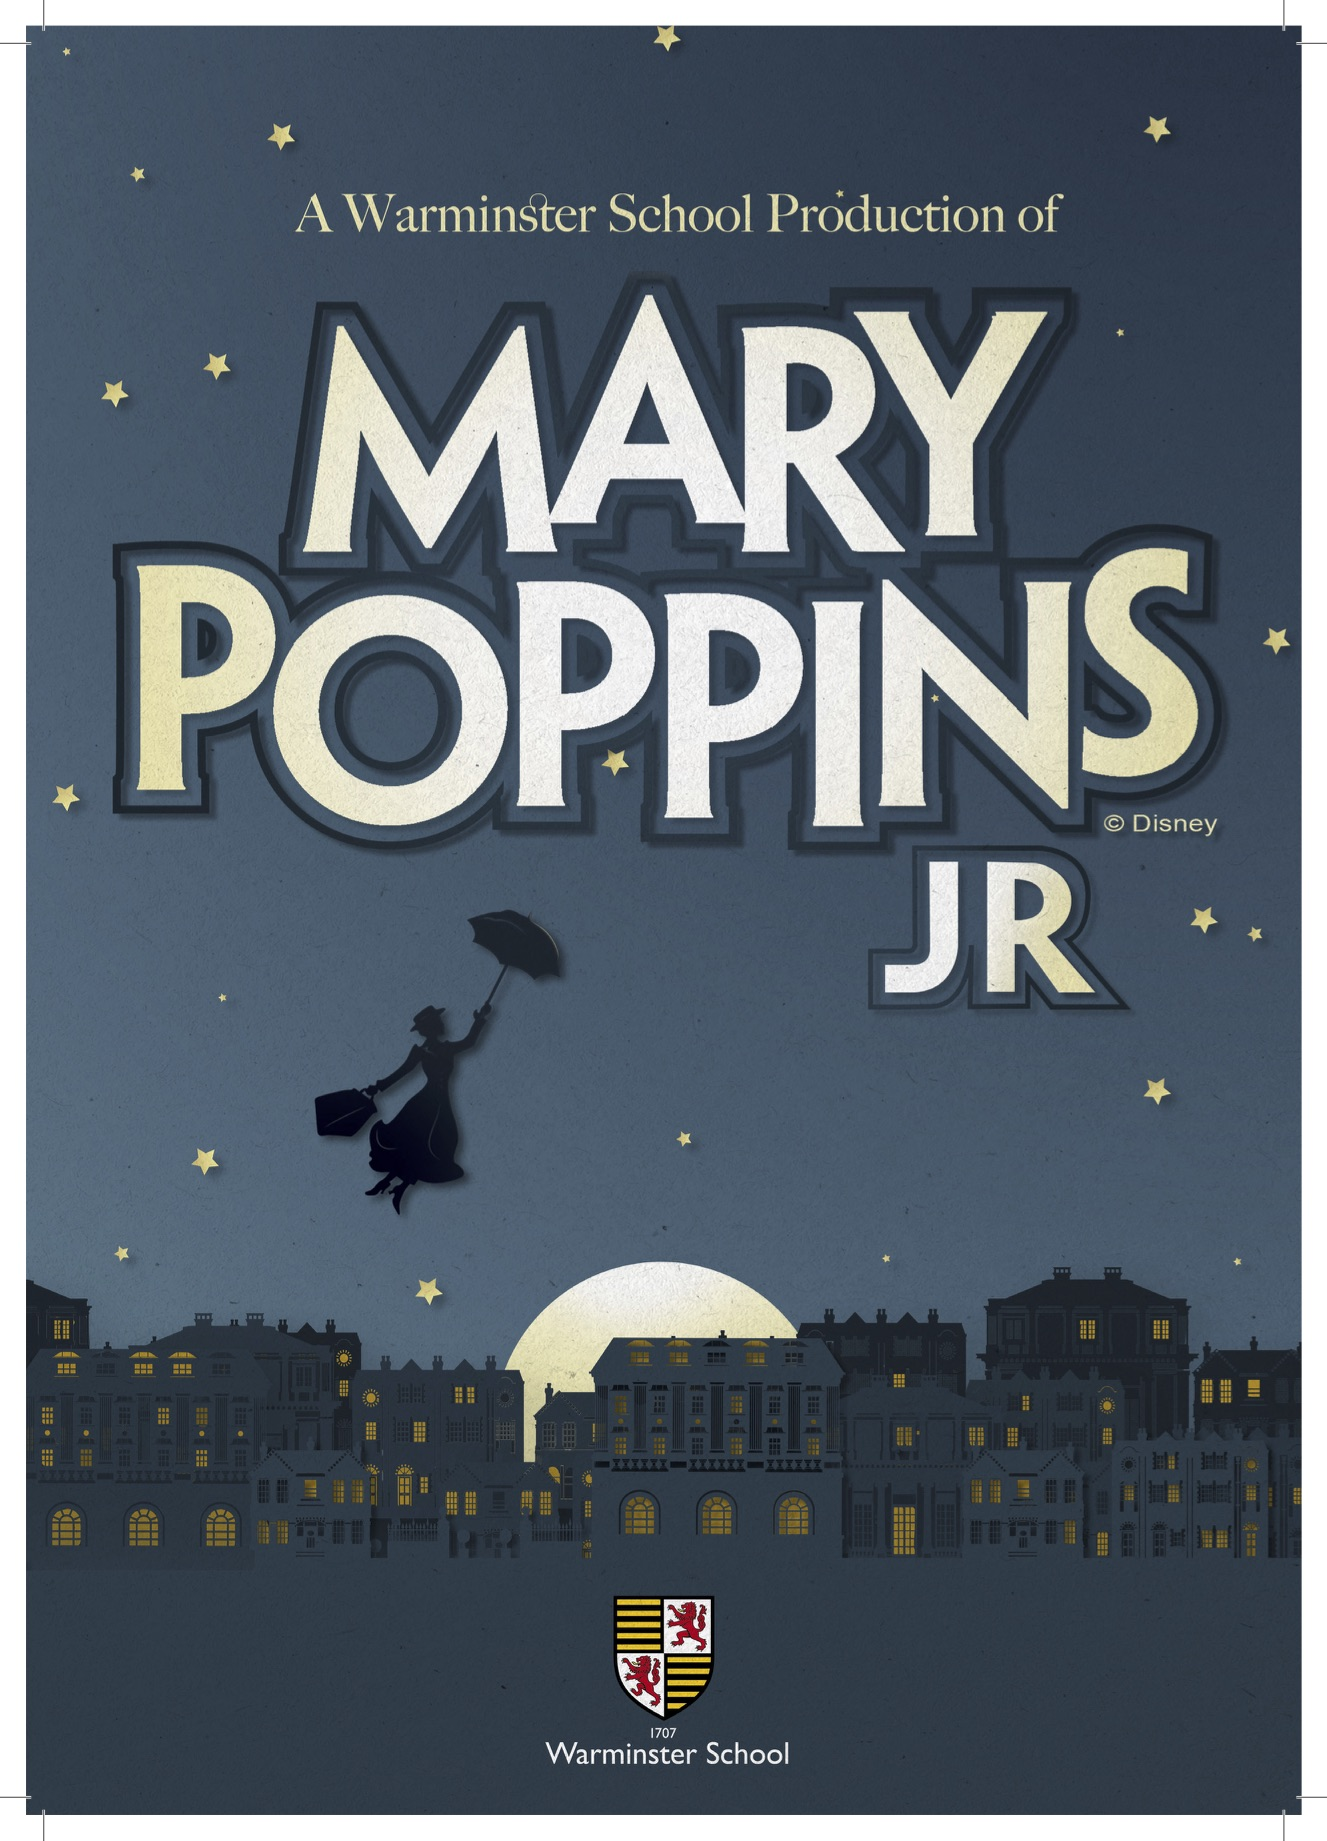 Mary Poppins JR banner image